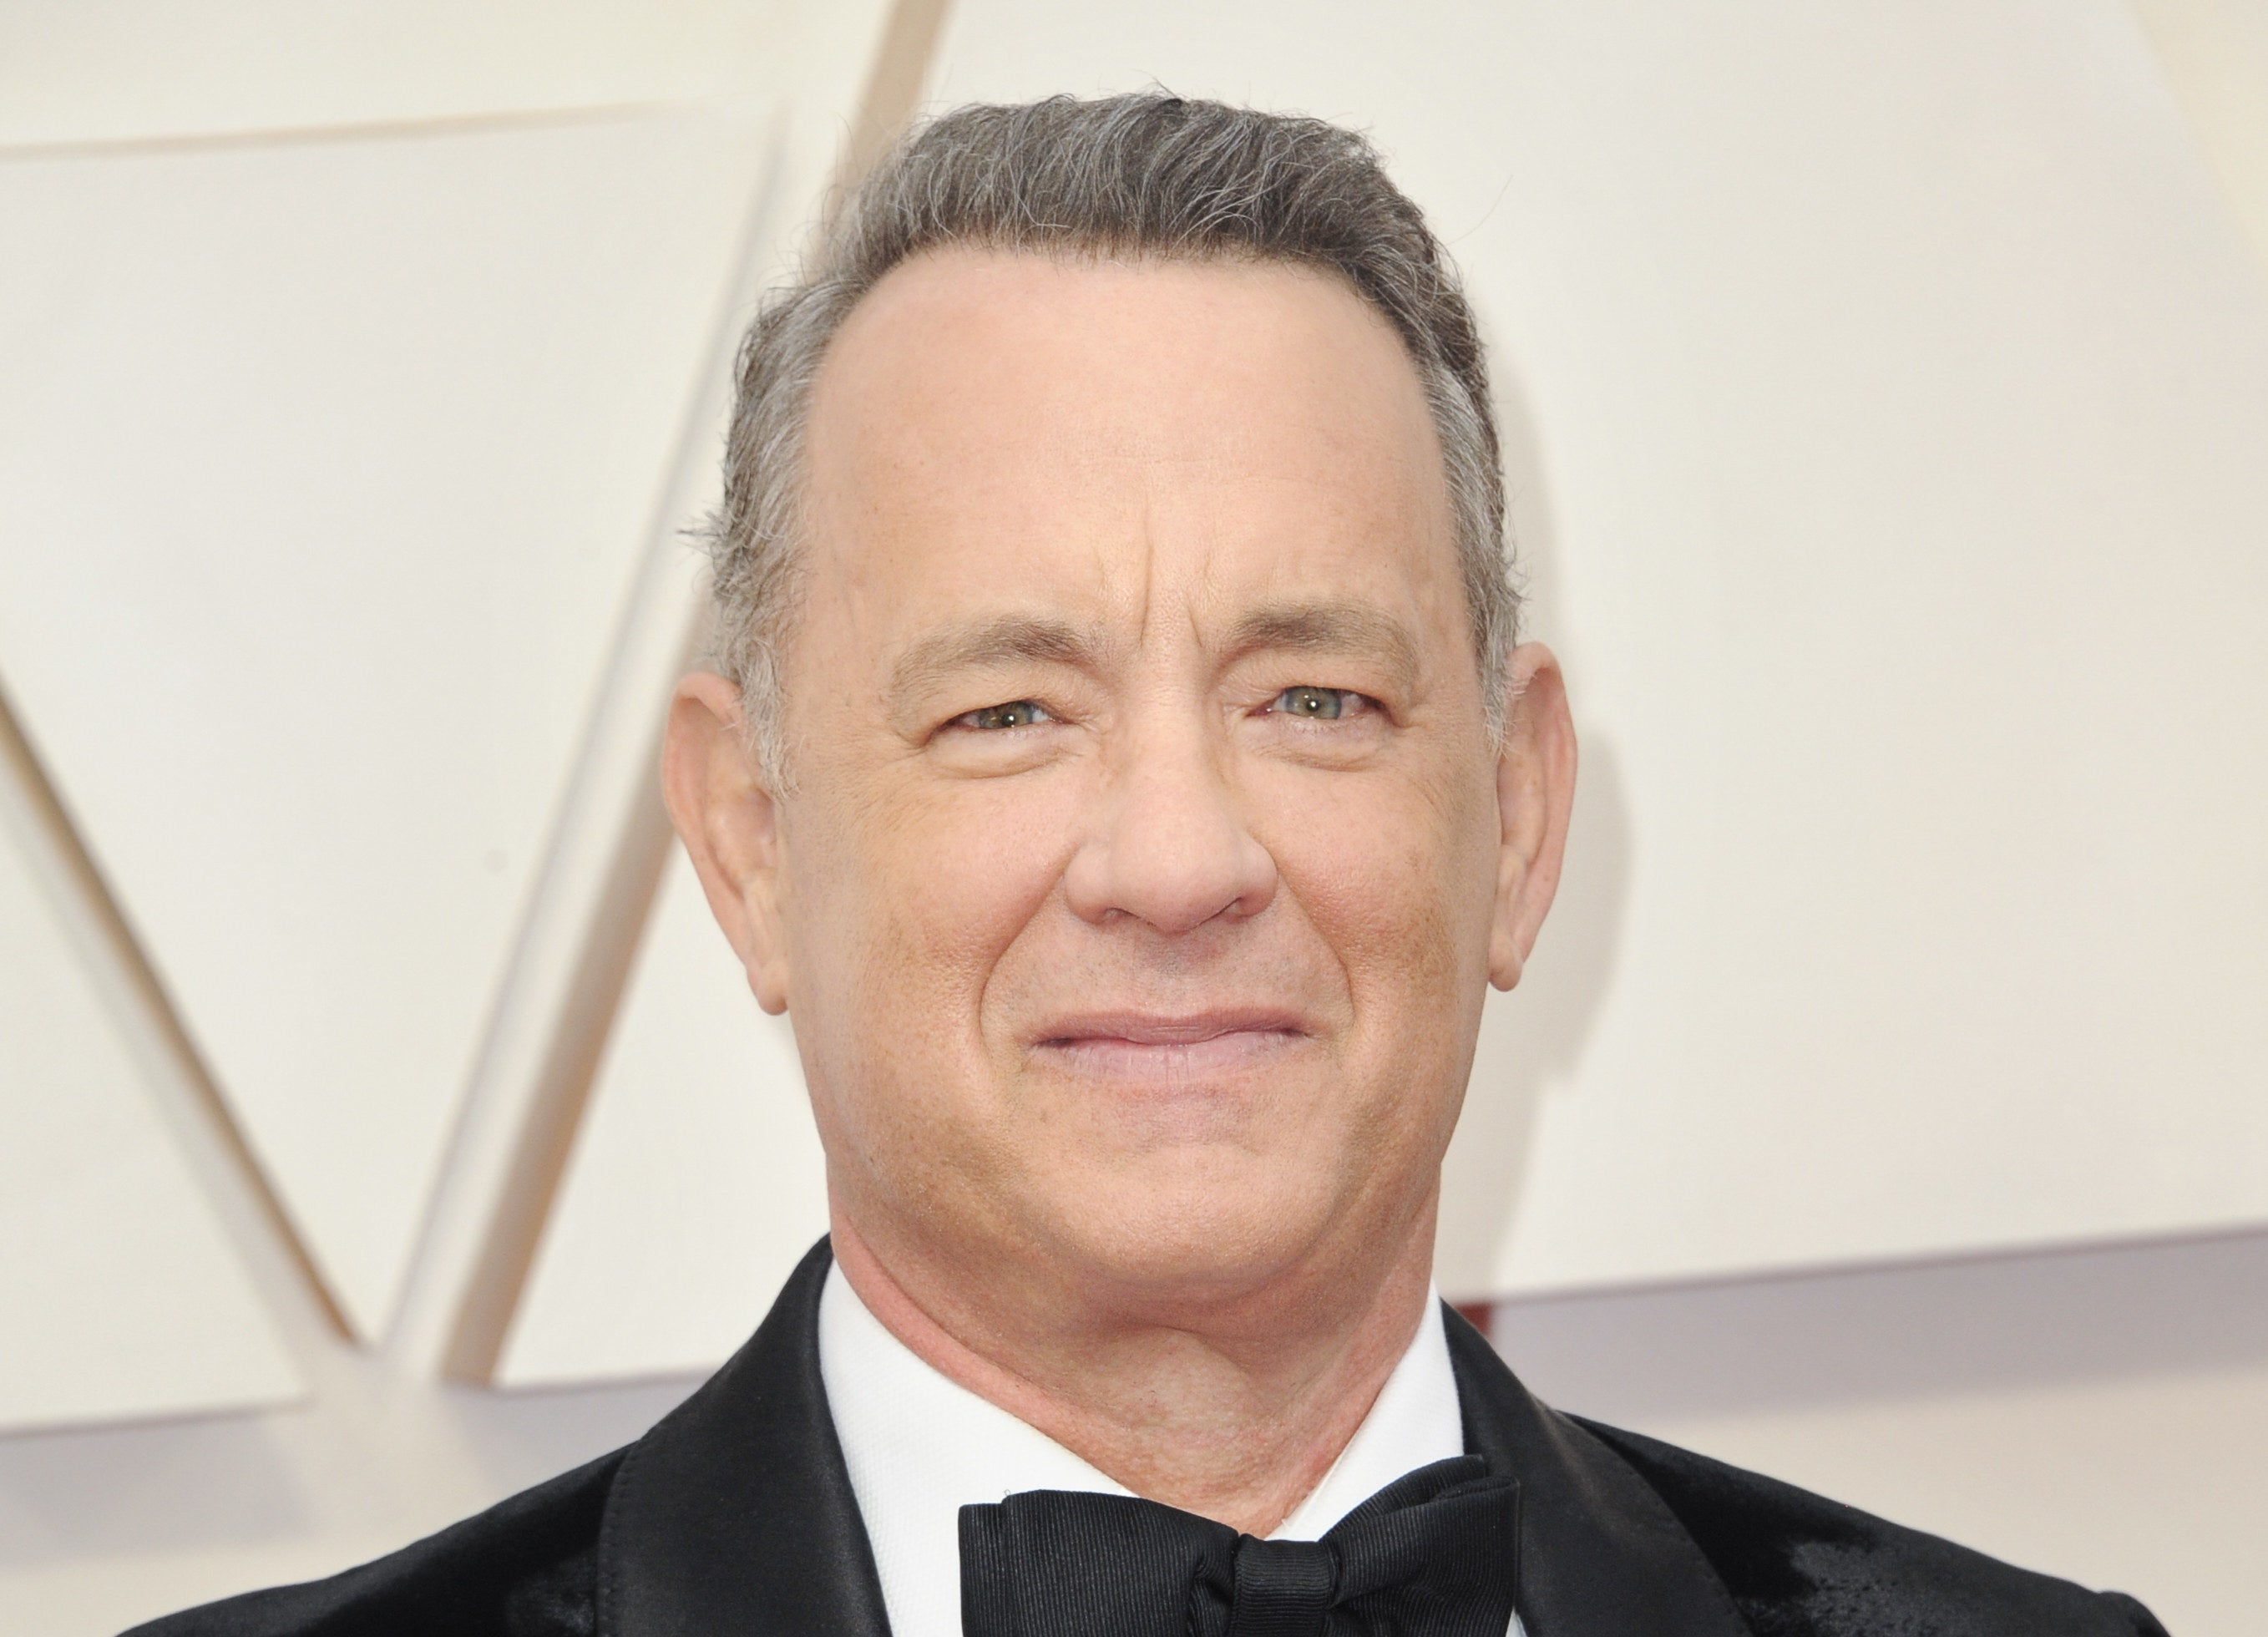 Photo of Tom Hanks in a suit at an awards show